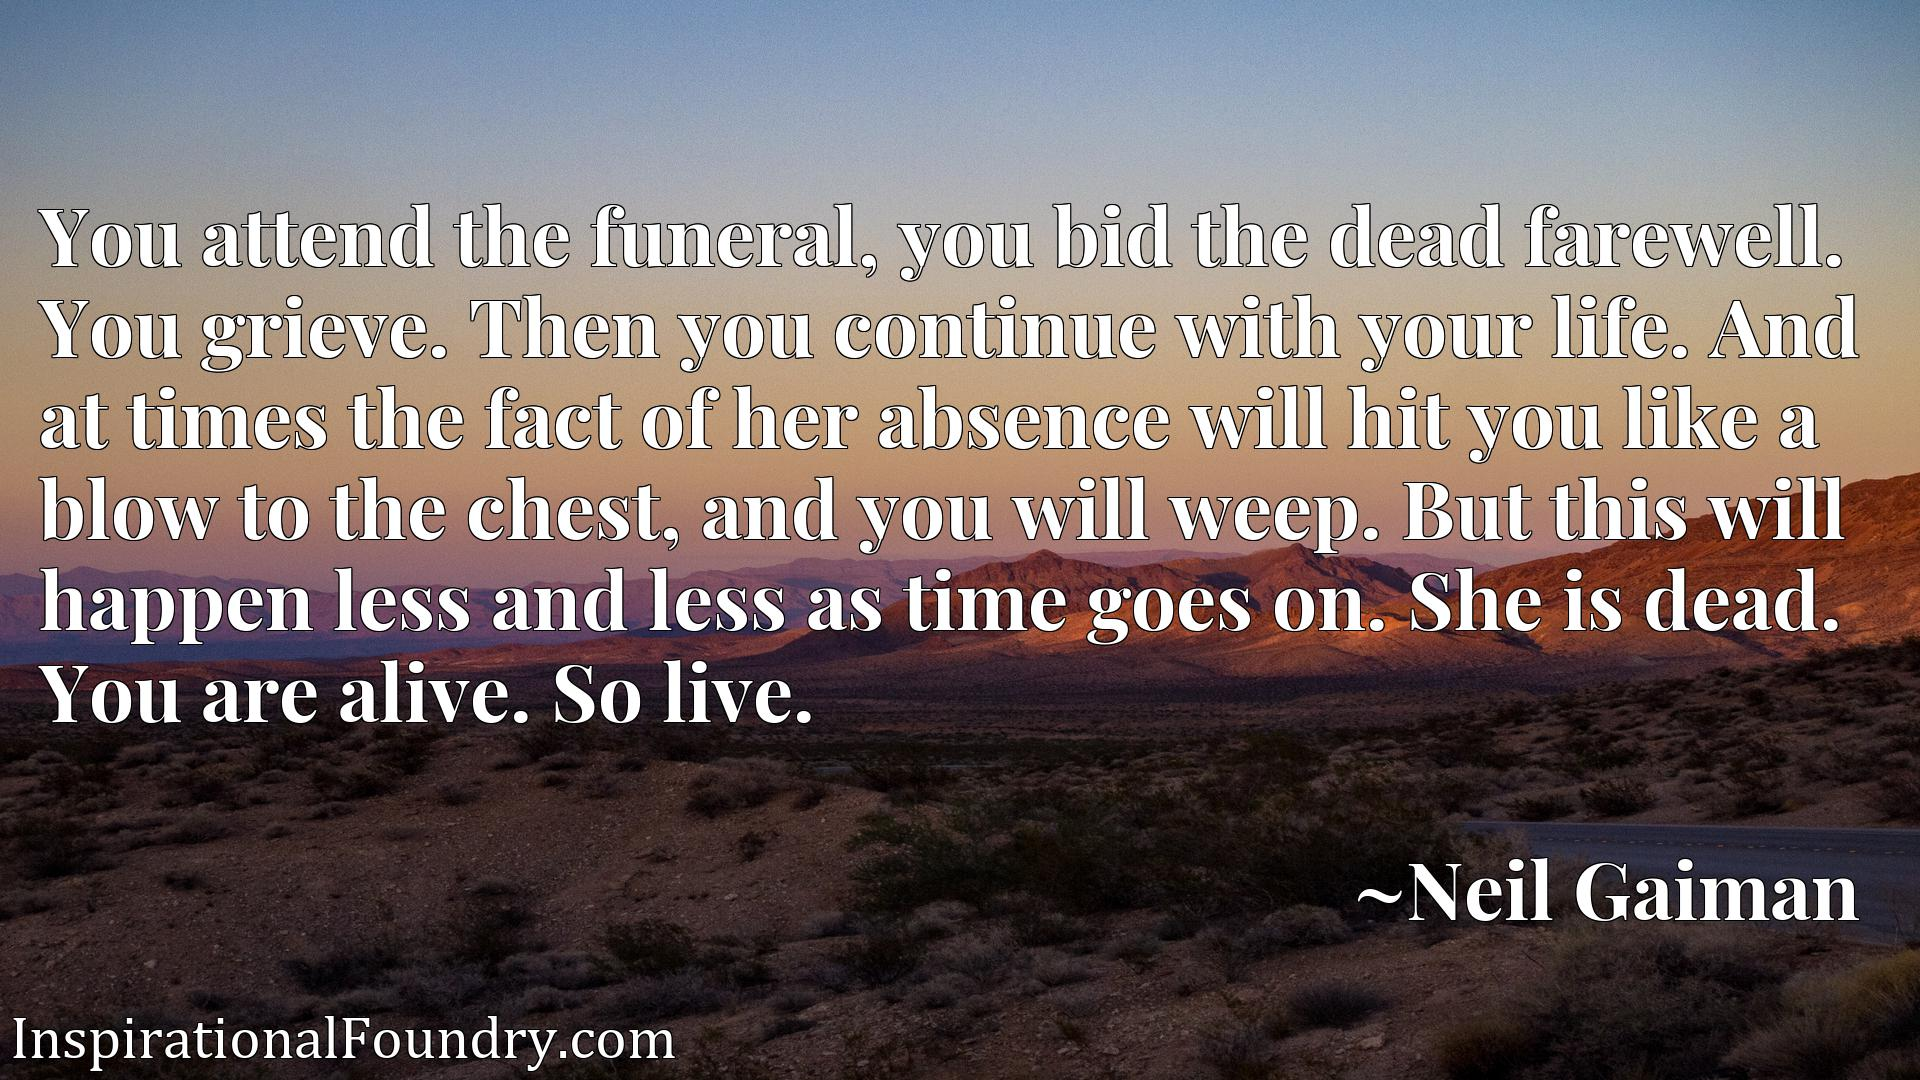 You attend the funeral, you bid the dead farewell. You grieve. Then you continue with your life. And at times the fact of her absence will hit you like a blow to the chest, and you will weep. But this will happen less and less as time goes on. She is dead. You are alive. So live.